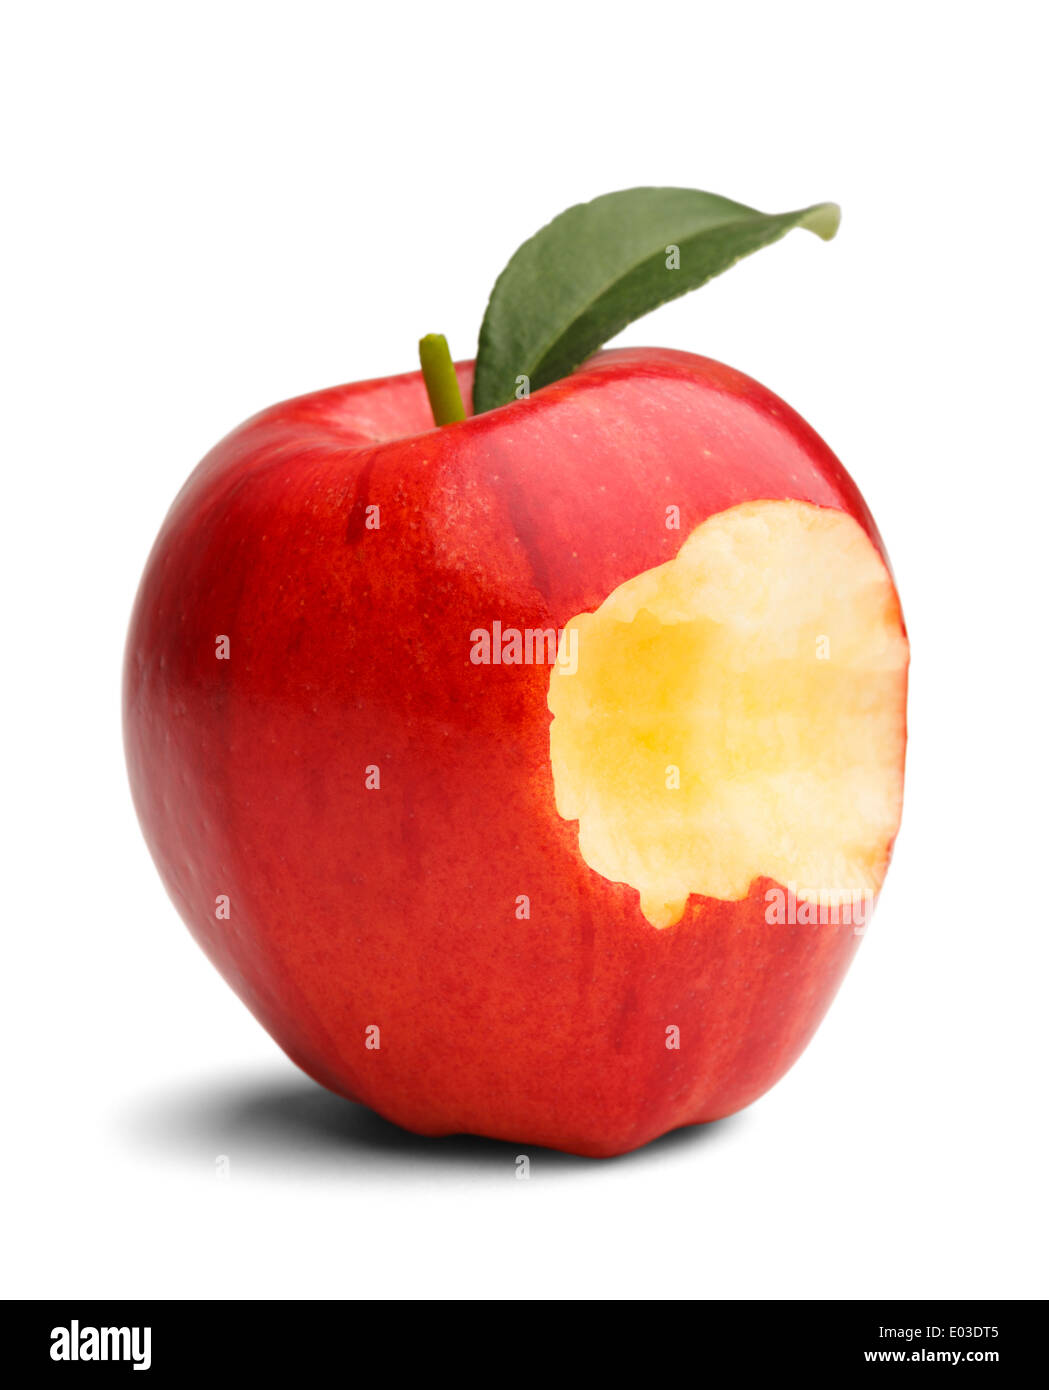 Red apple with green leaf missing a bite isolated on a white background. - Stock Image